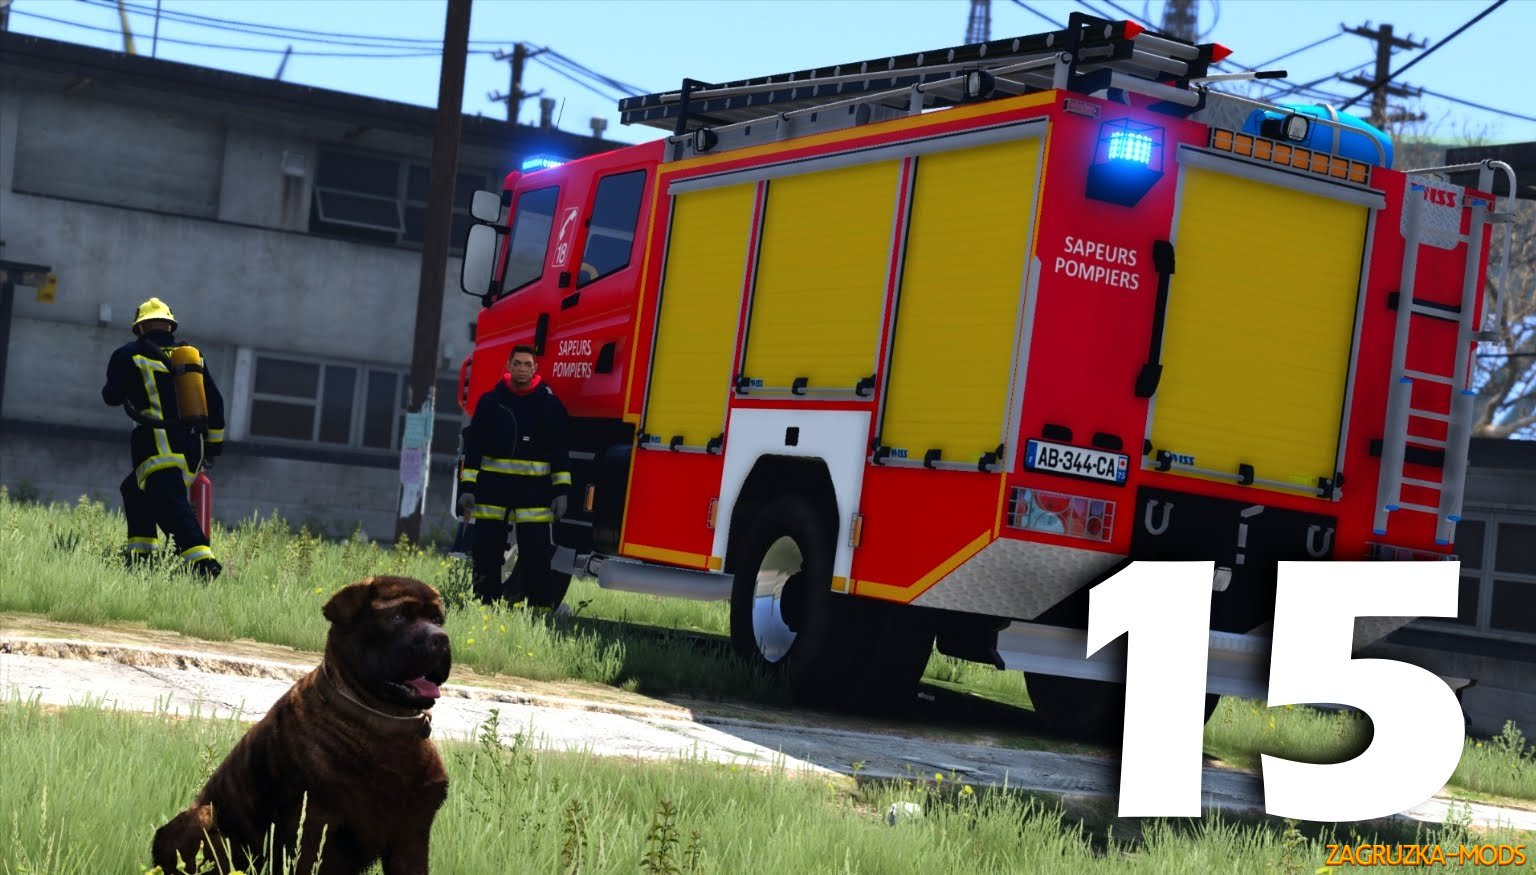 Firefighter Mod (Mode Sapeurs-Pompiers) v2.8 for GTA 5